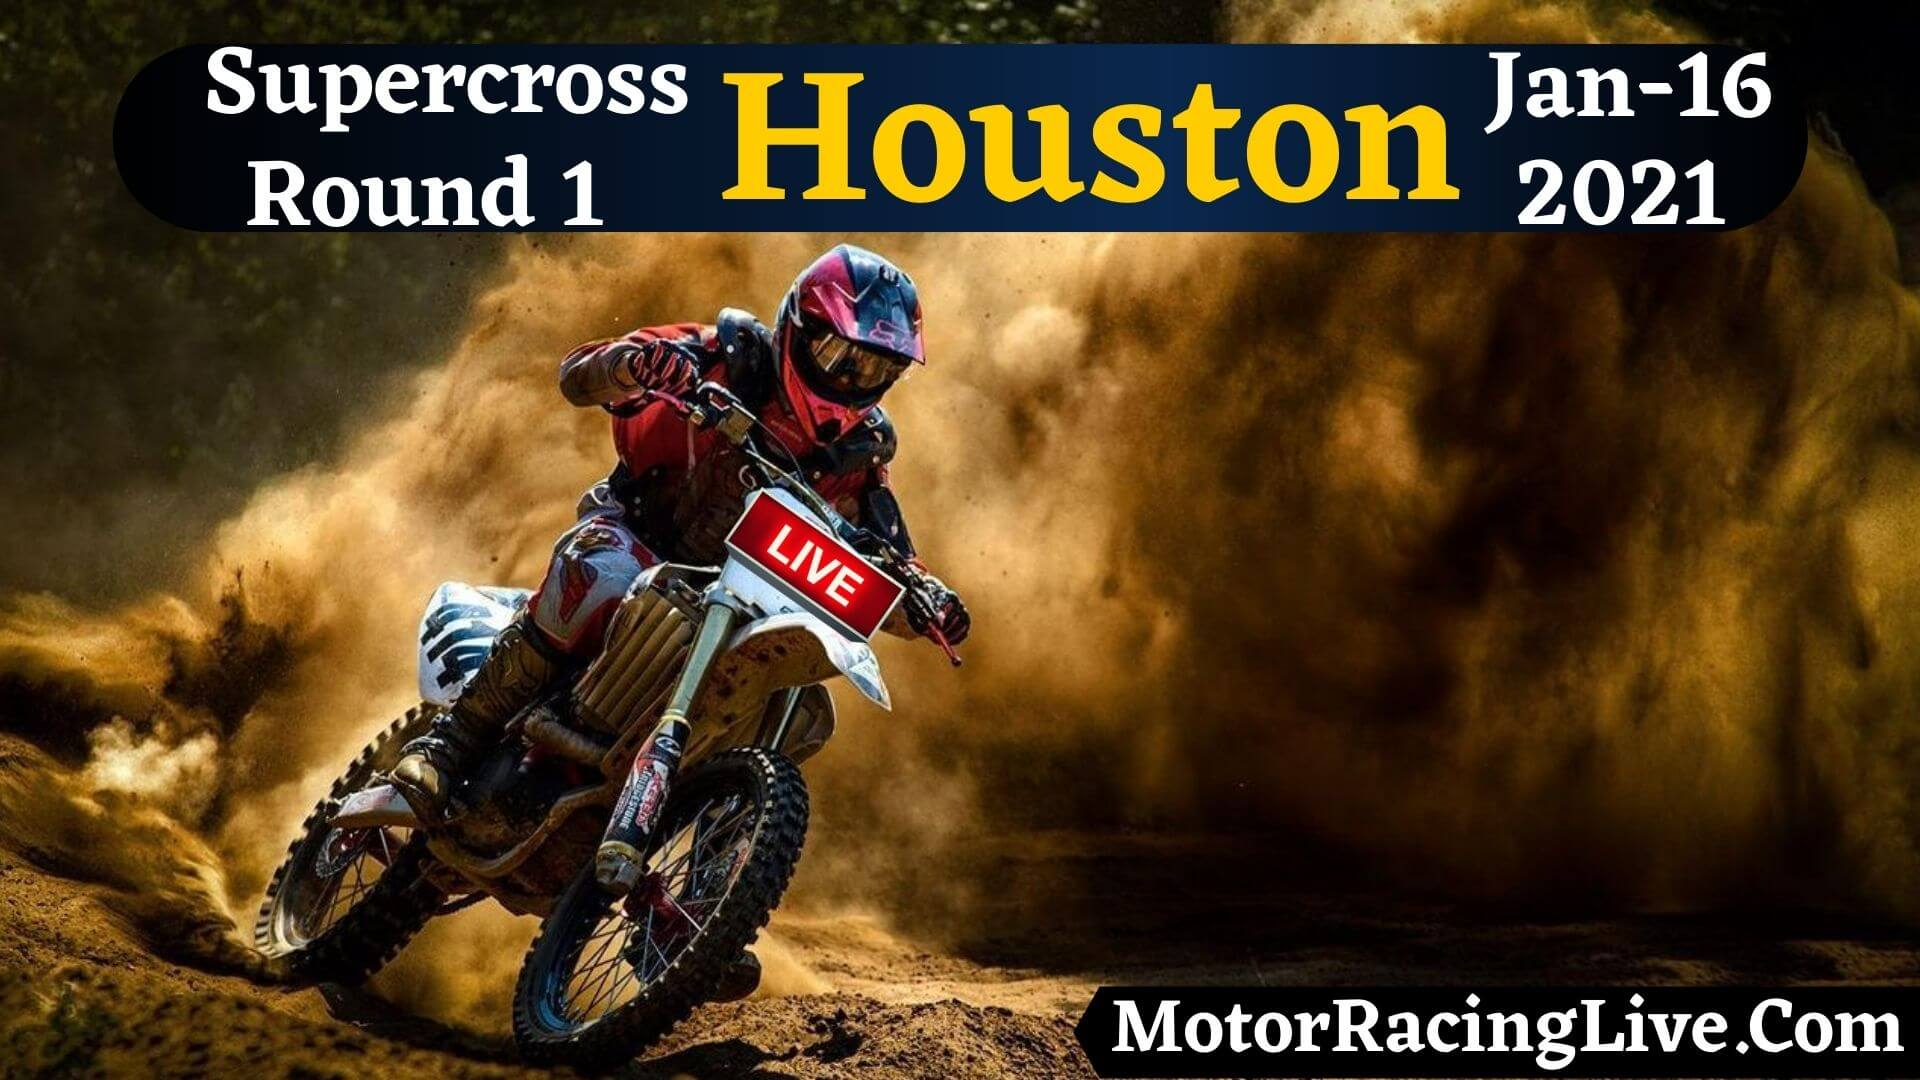 Supercross Houston Round 1 Live Stream 16- Jan 2021